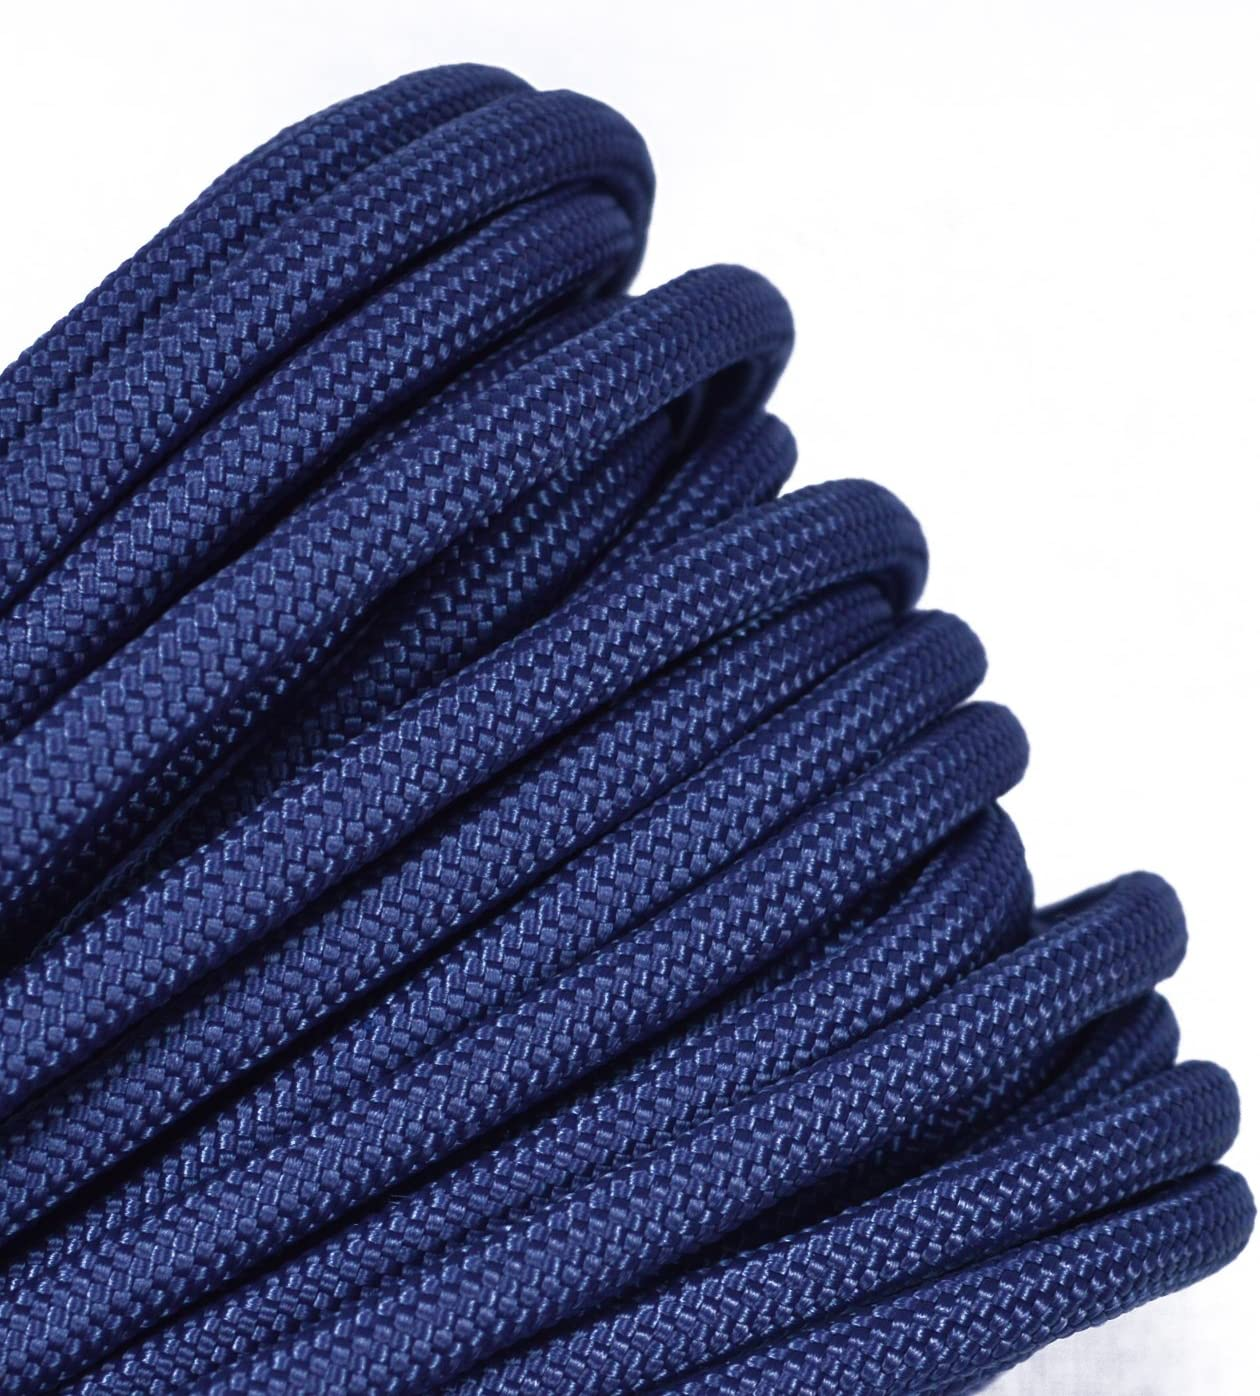 Solid Colors Paracord - Type III Cord unisex Navy 100 Store FS Parachute